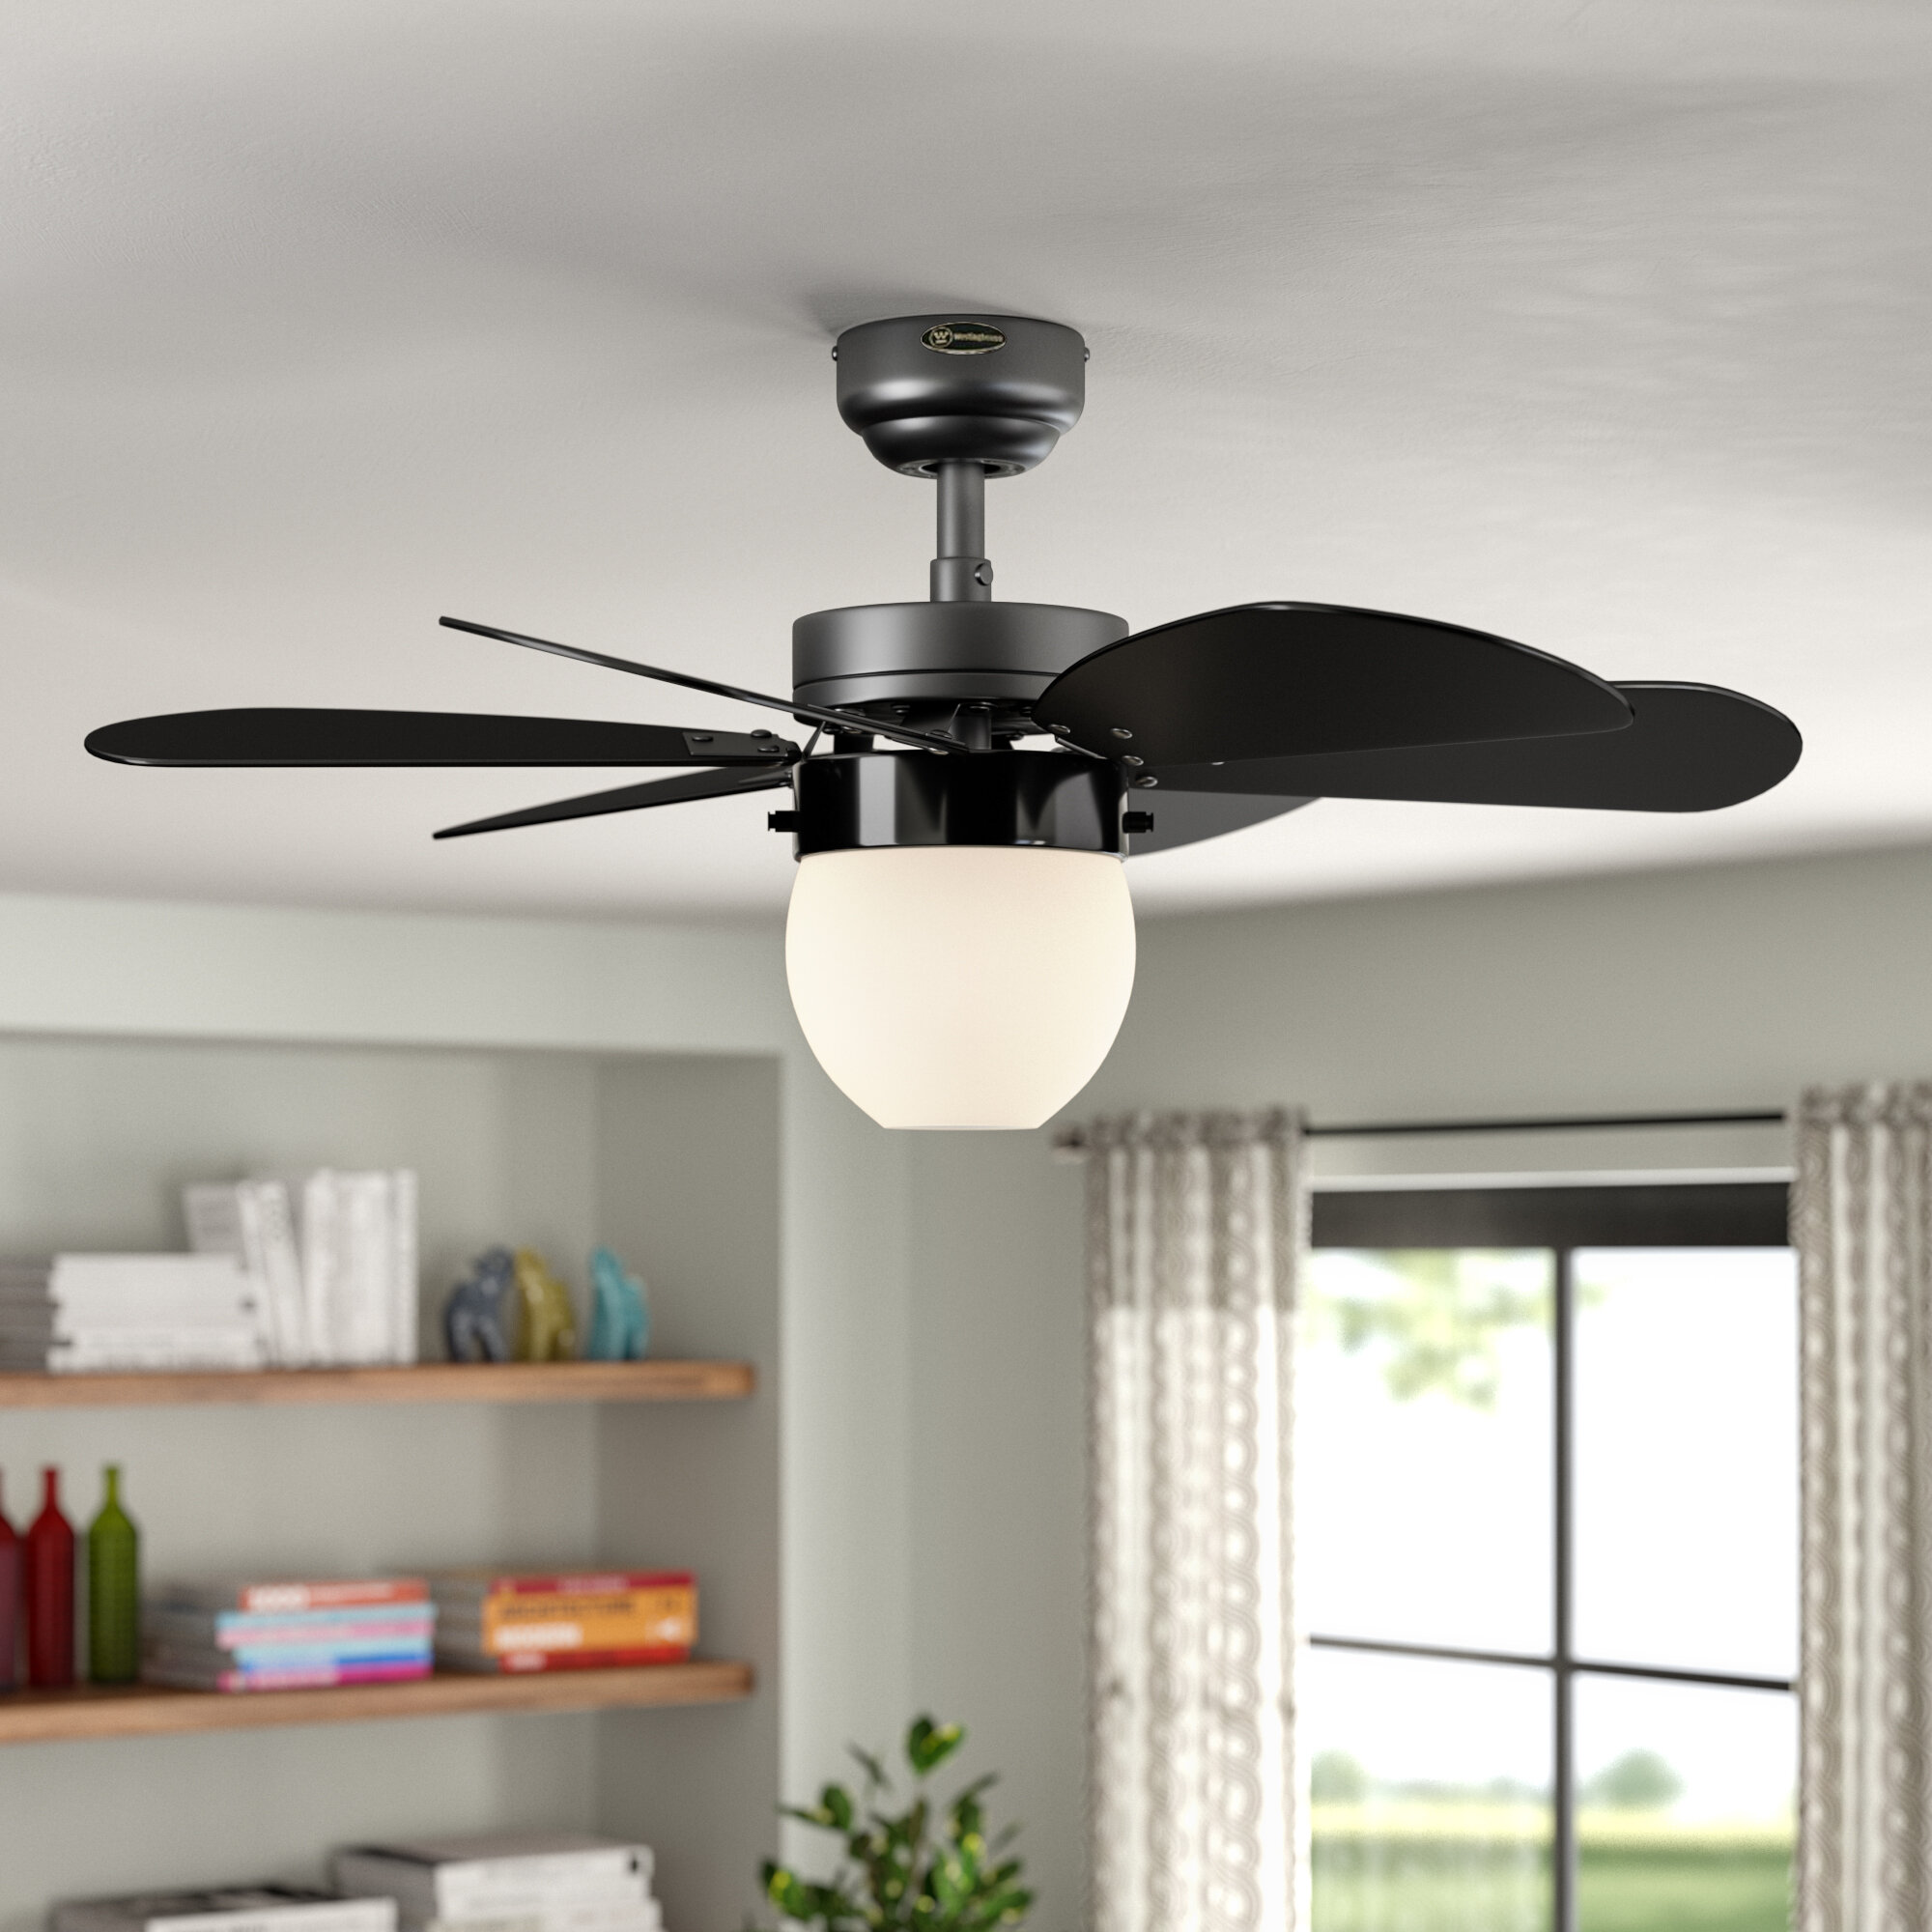 How to Install a Ceiling Fan | Wayfair Installing Ceiling Fan Pink Wire on installing cieling fan, installing a ceiling light box without a previous, installing wall fan, installing kitchen fan, installing crown molding, install fan, installing air conditioning, installing outdoor fan,